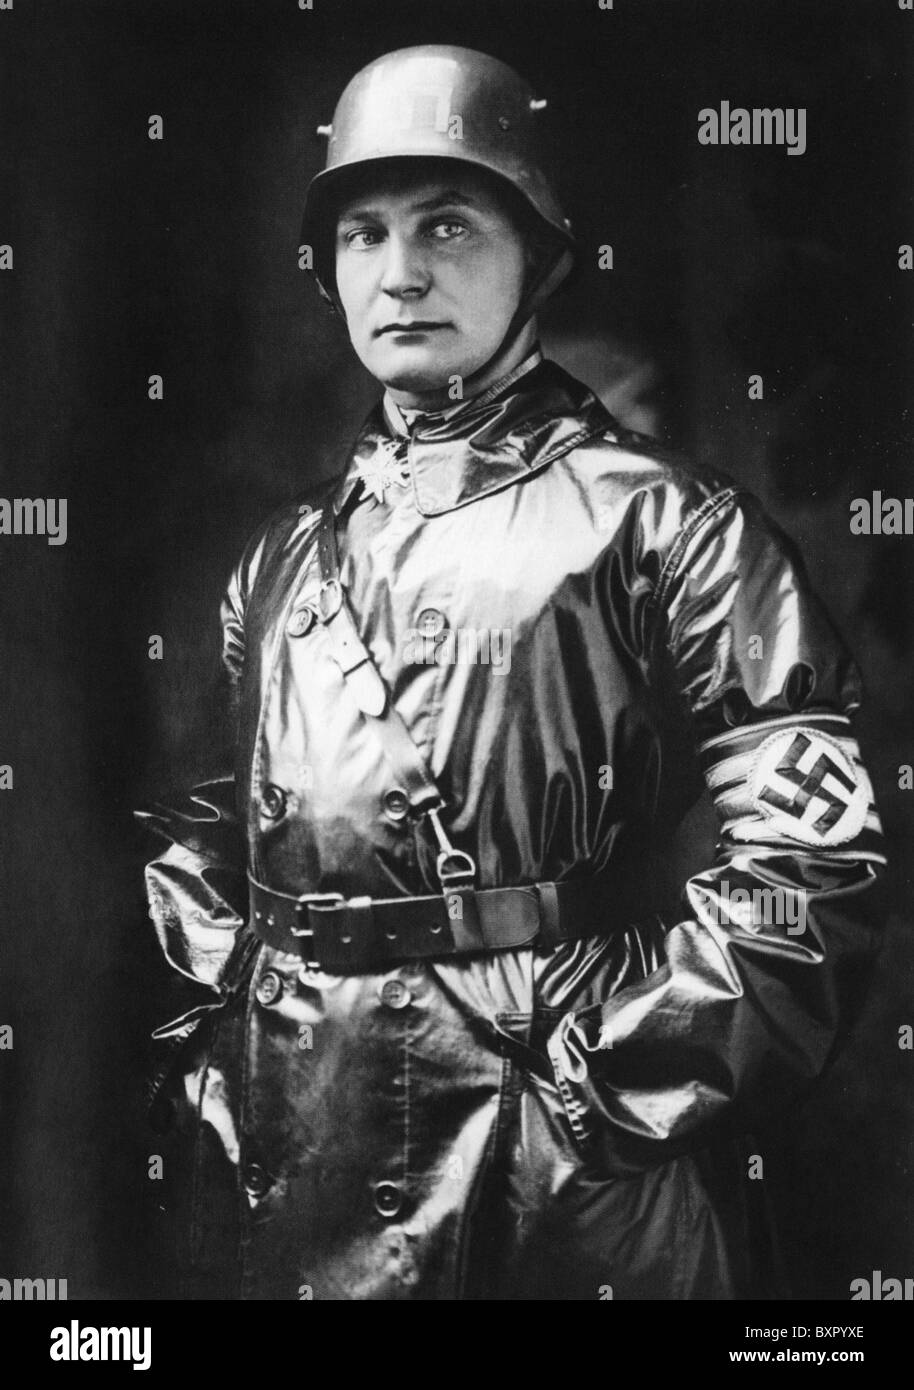 HERMAN GOERING (1893-1946) as the SA (Sturmabteilung) commander in 1923, wearing his Pour le Merite  medal Stock Photo